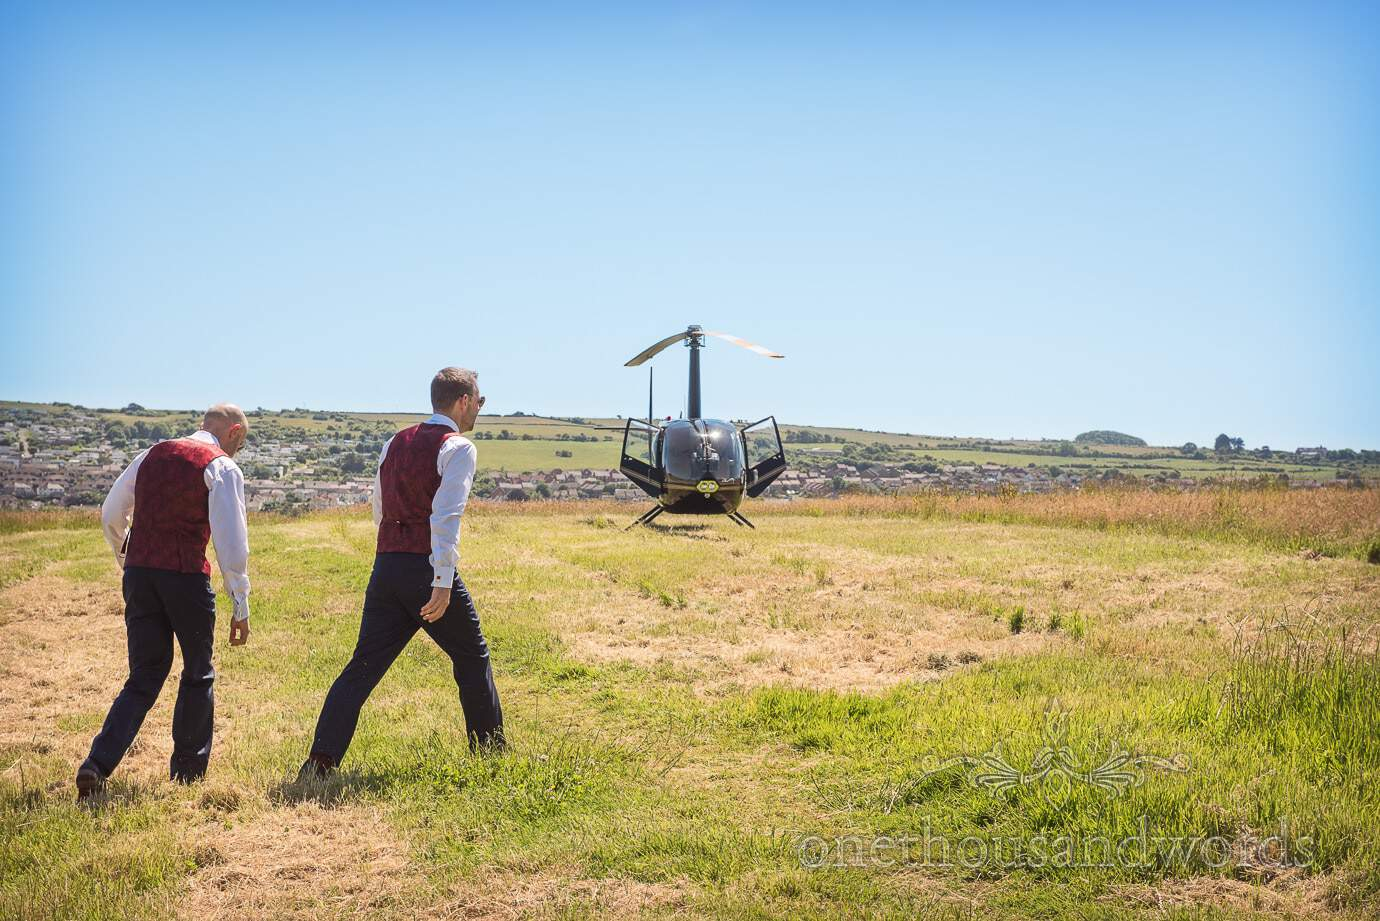 Grooms walk to wedding helicopter in Dorset countryside field